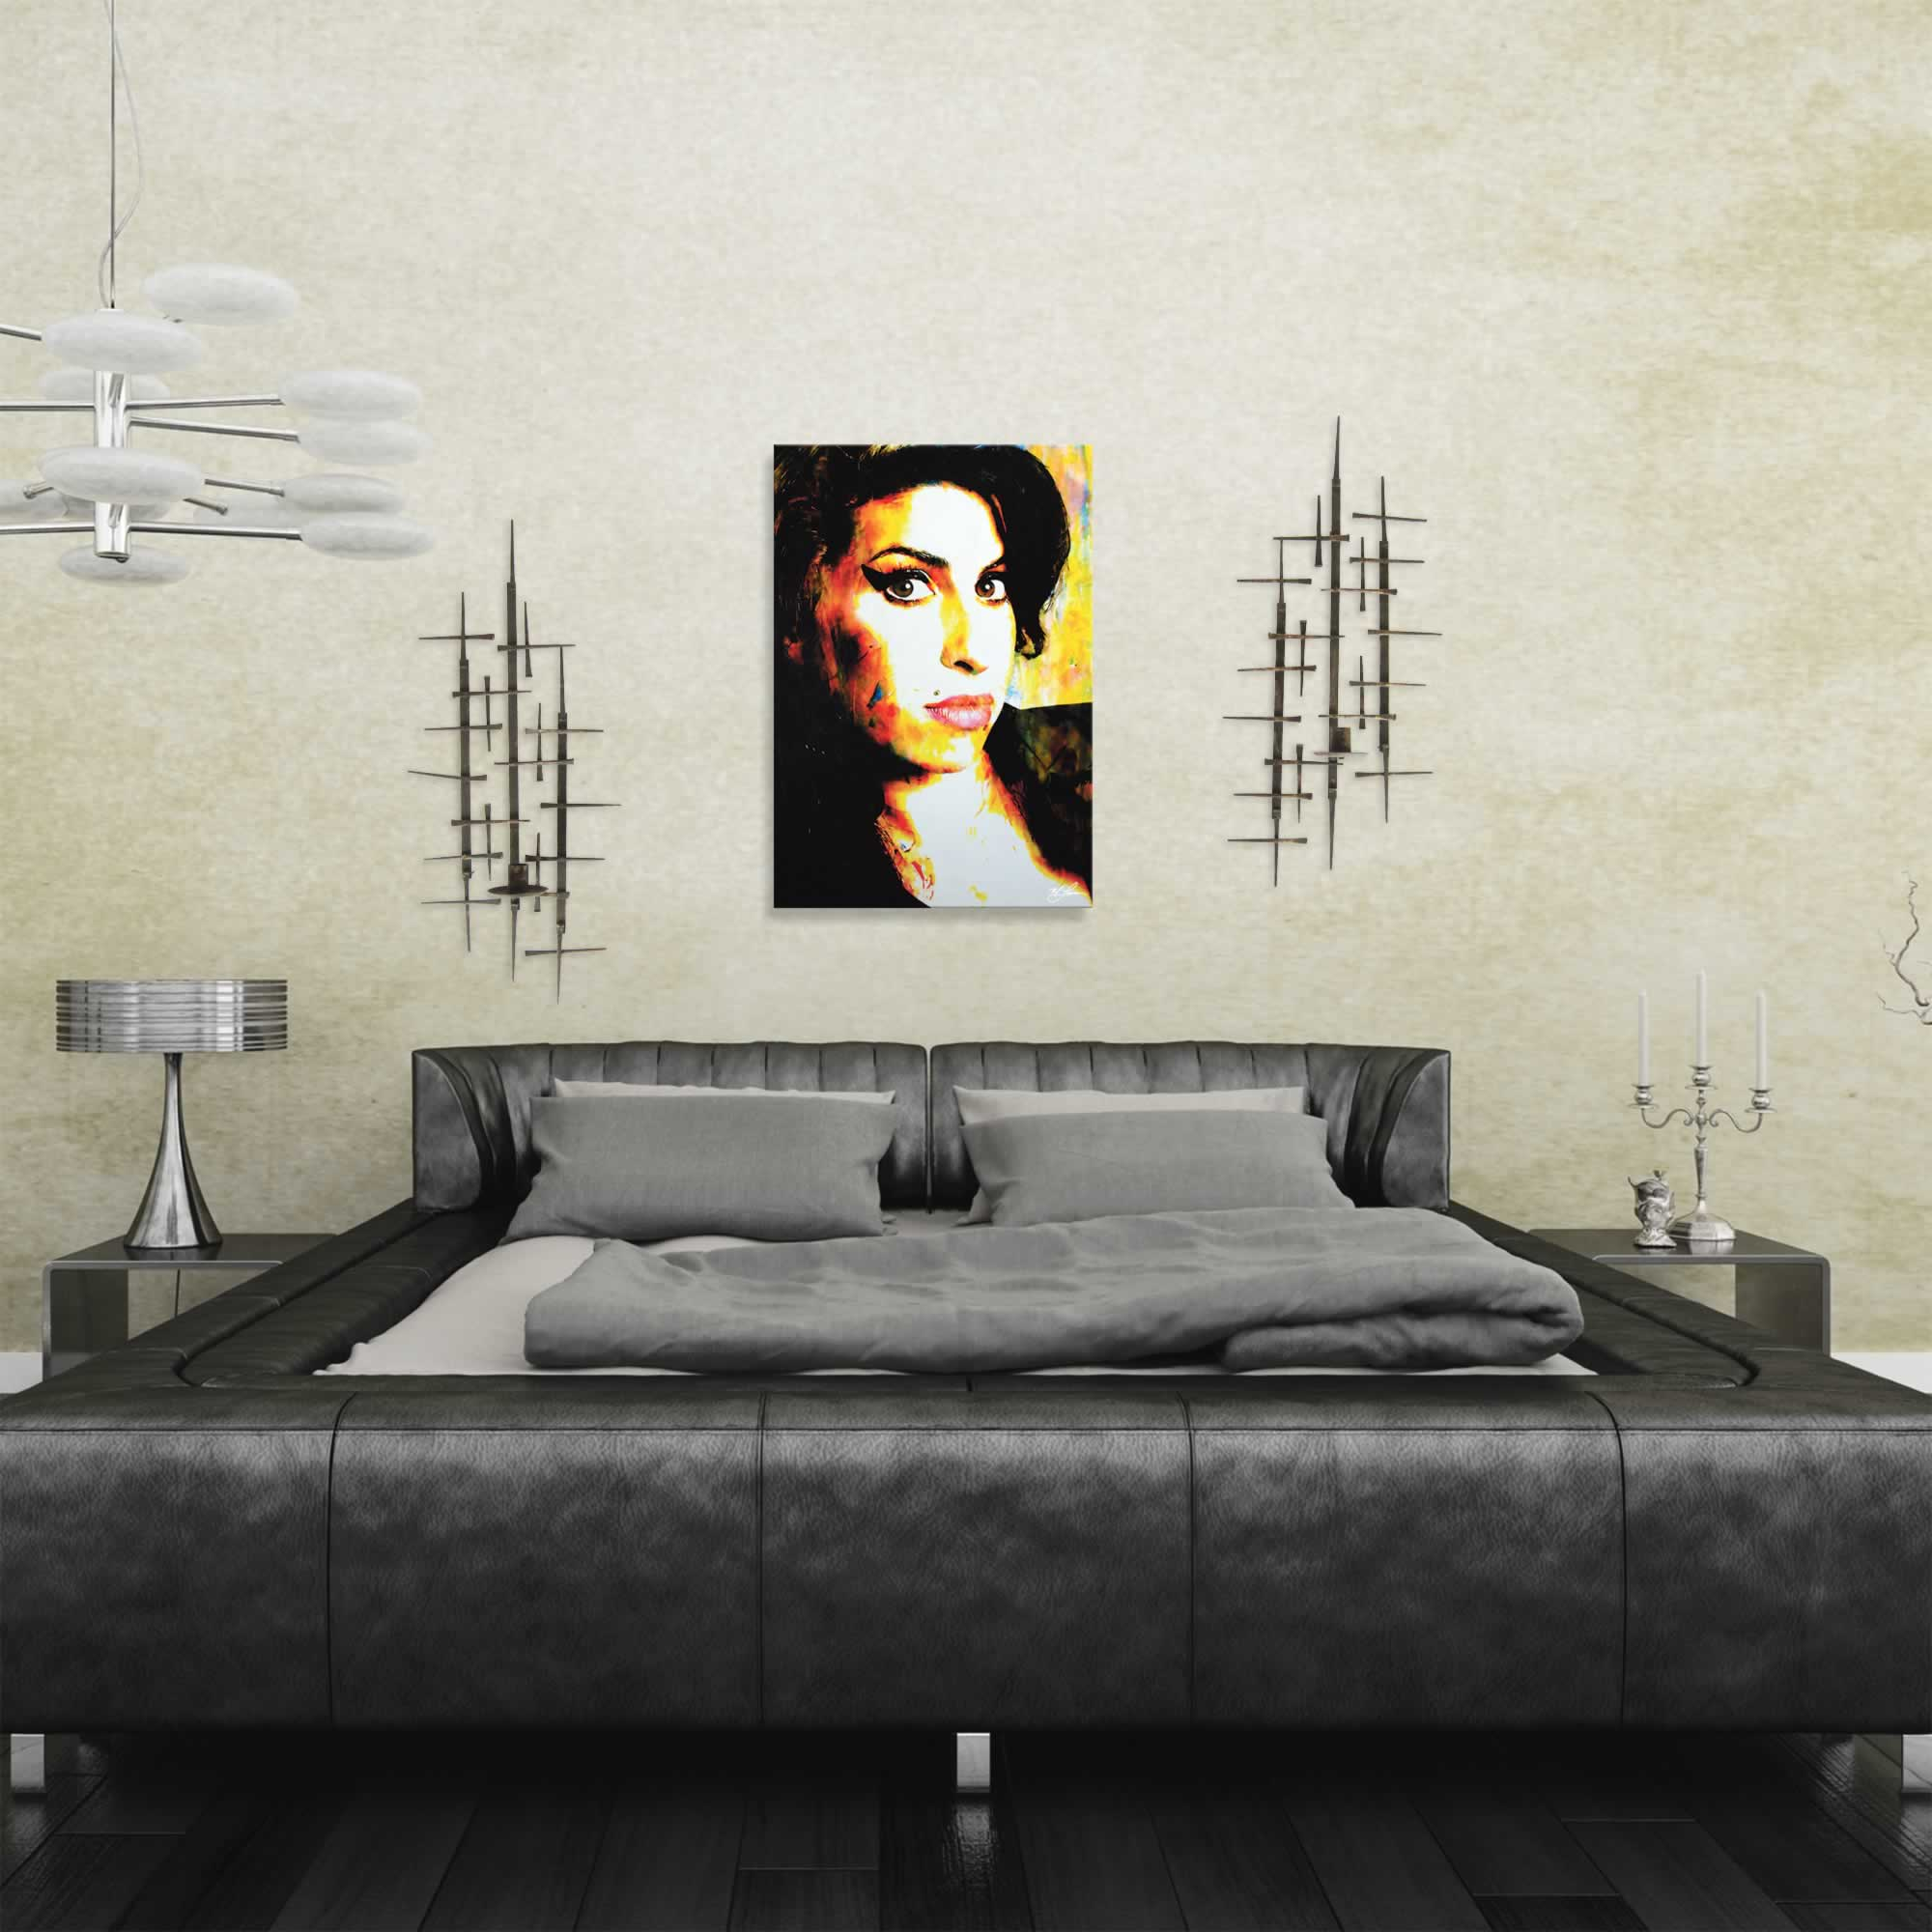 Amy Winehouse A School of Thought | Pop Art Painting by Mark Lewis, Signed & Numbered Limited Edition - ML0007